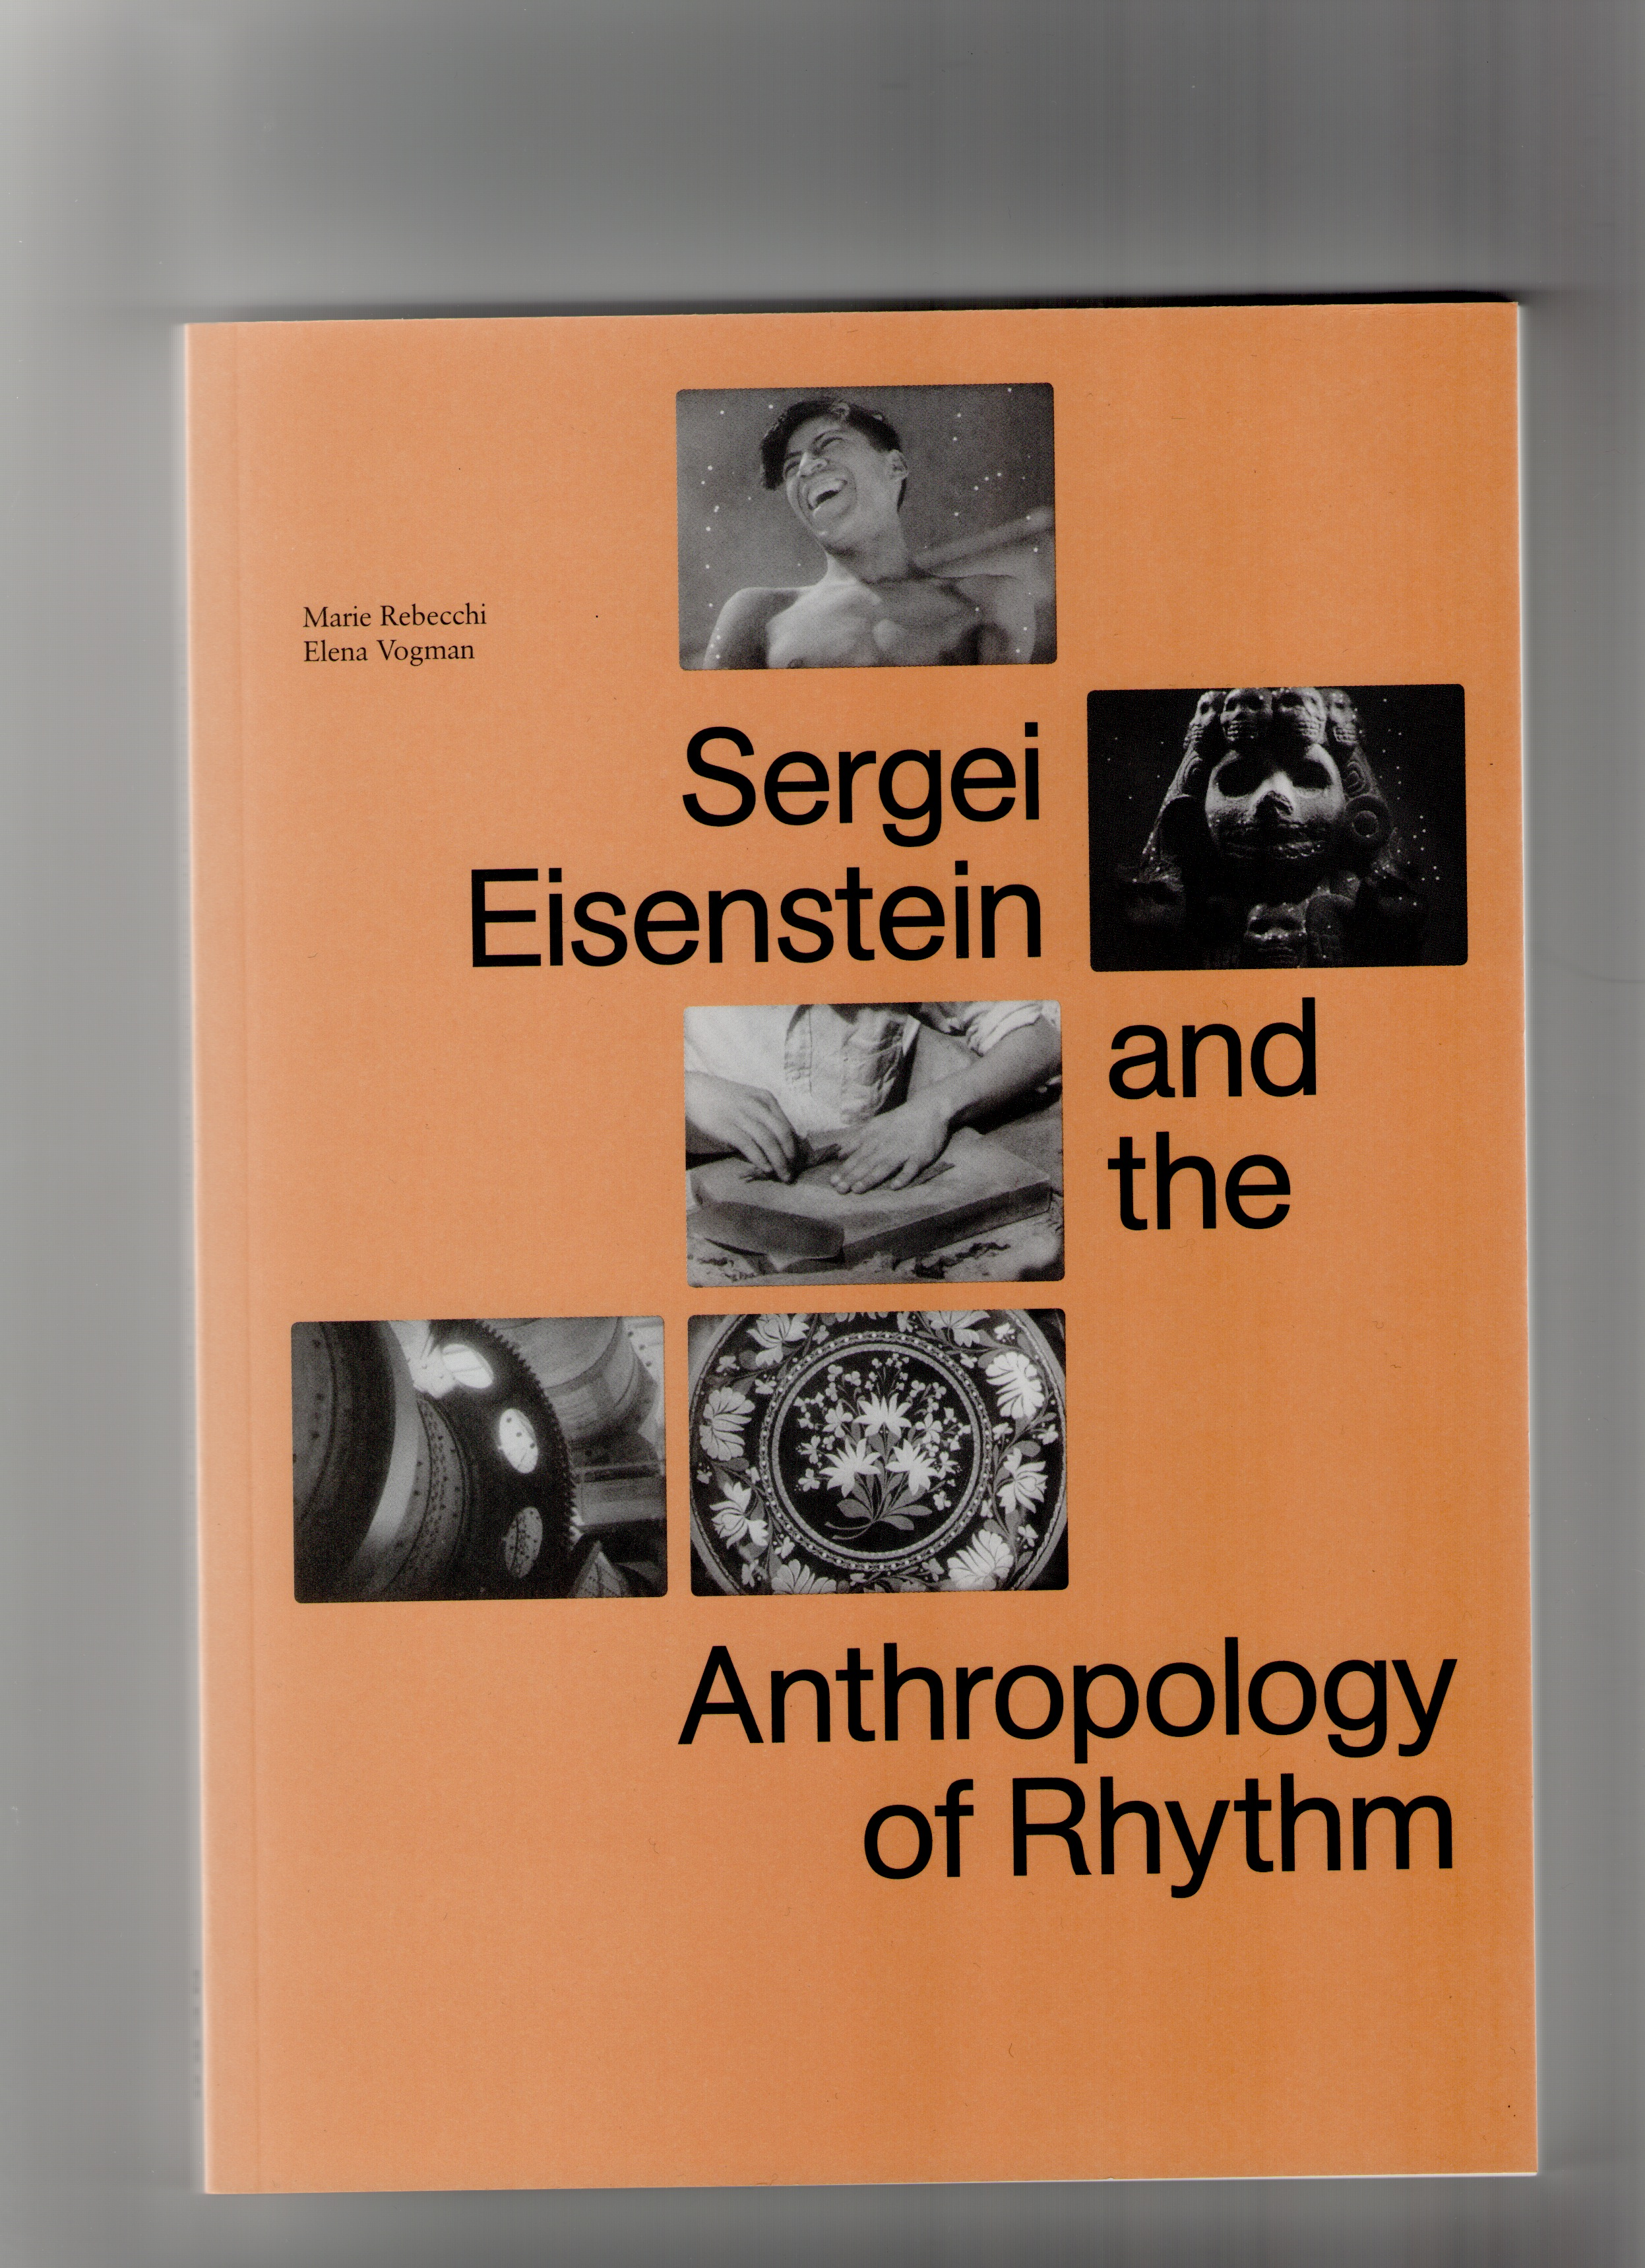 EISENSTEIN, Sergei M.; REBECCHI, Marie (ed.); VOGMAN, Elena (ed.) - Sergei Eisenstein and the Anthropology of Rhythm